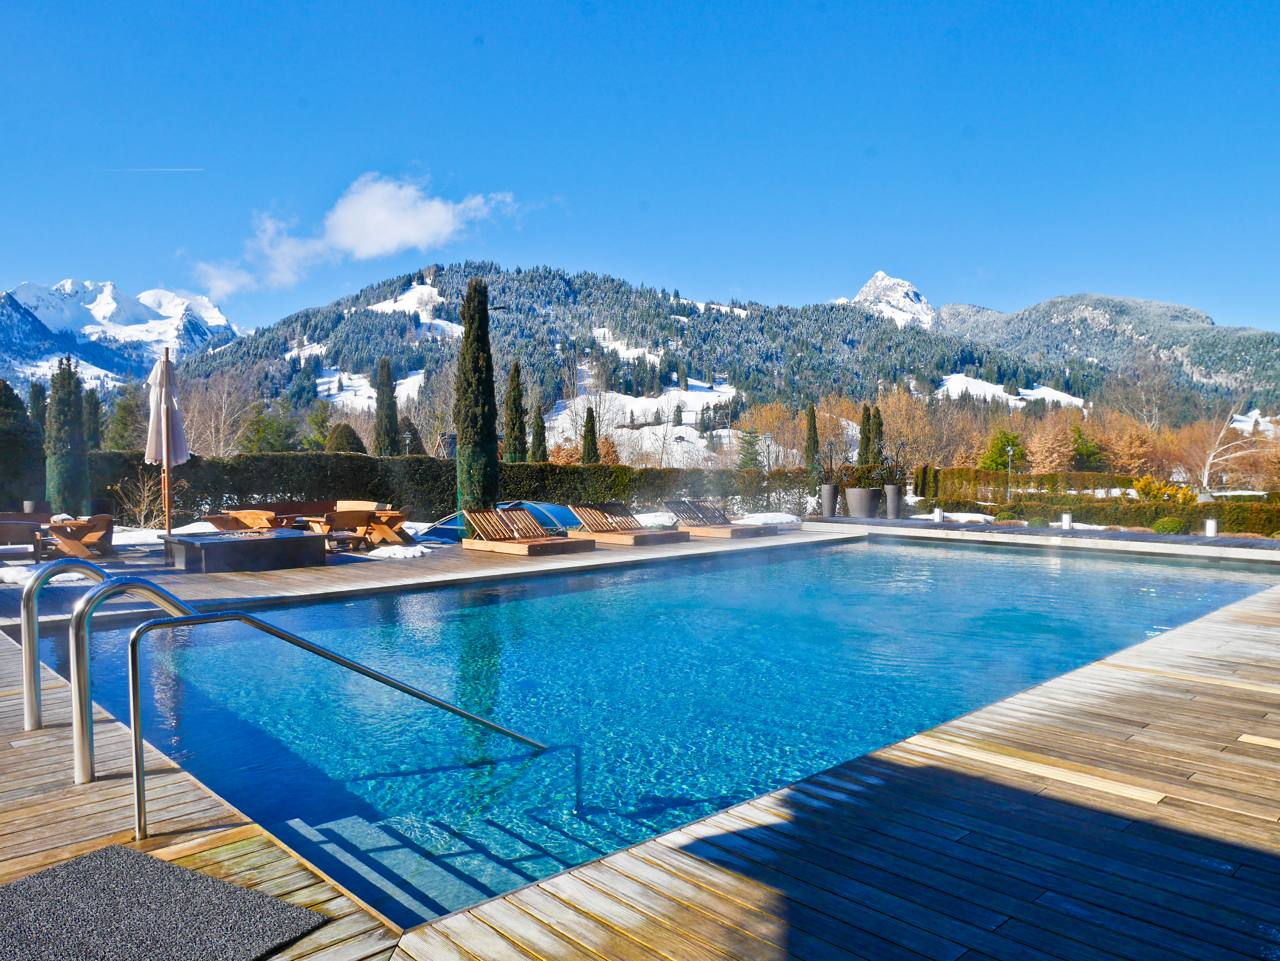 Alpina Gstaad - Outdoor Pool and Mountains